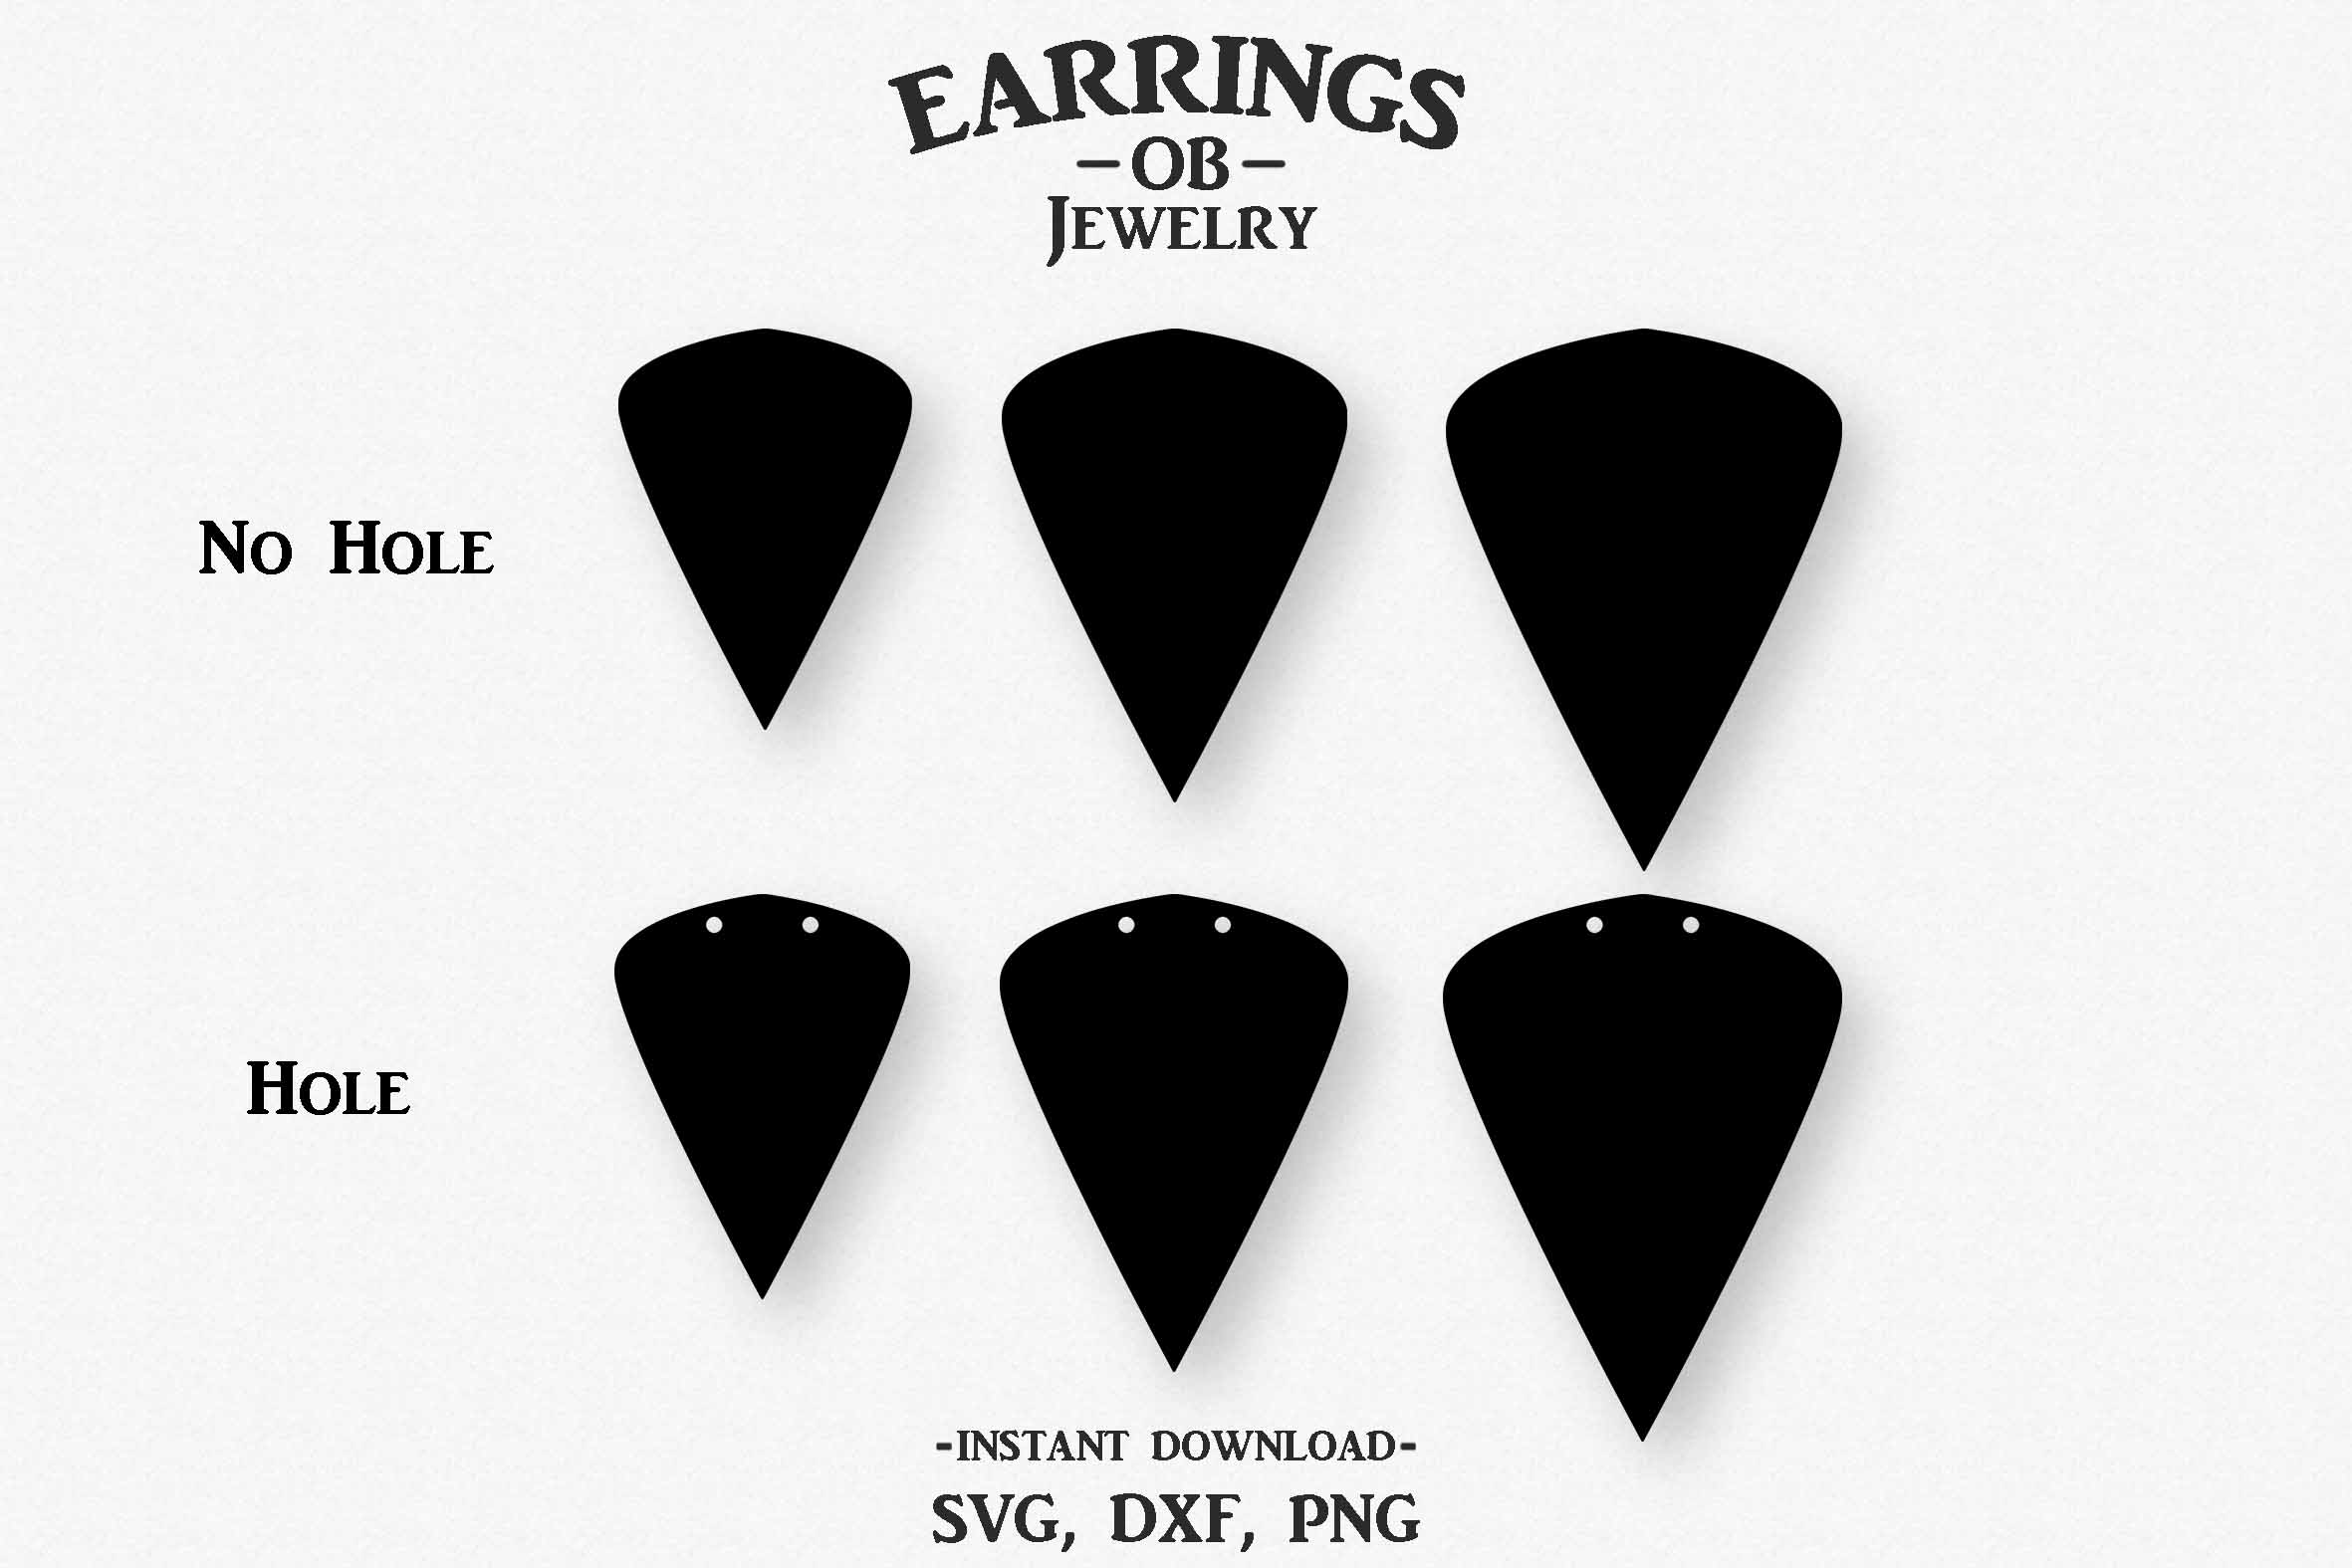 Double Hole Earring Svg, Teardrop, Leaf, Stacked, Cut File example image 2